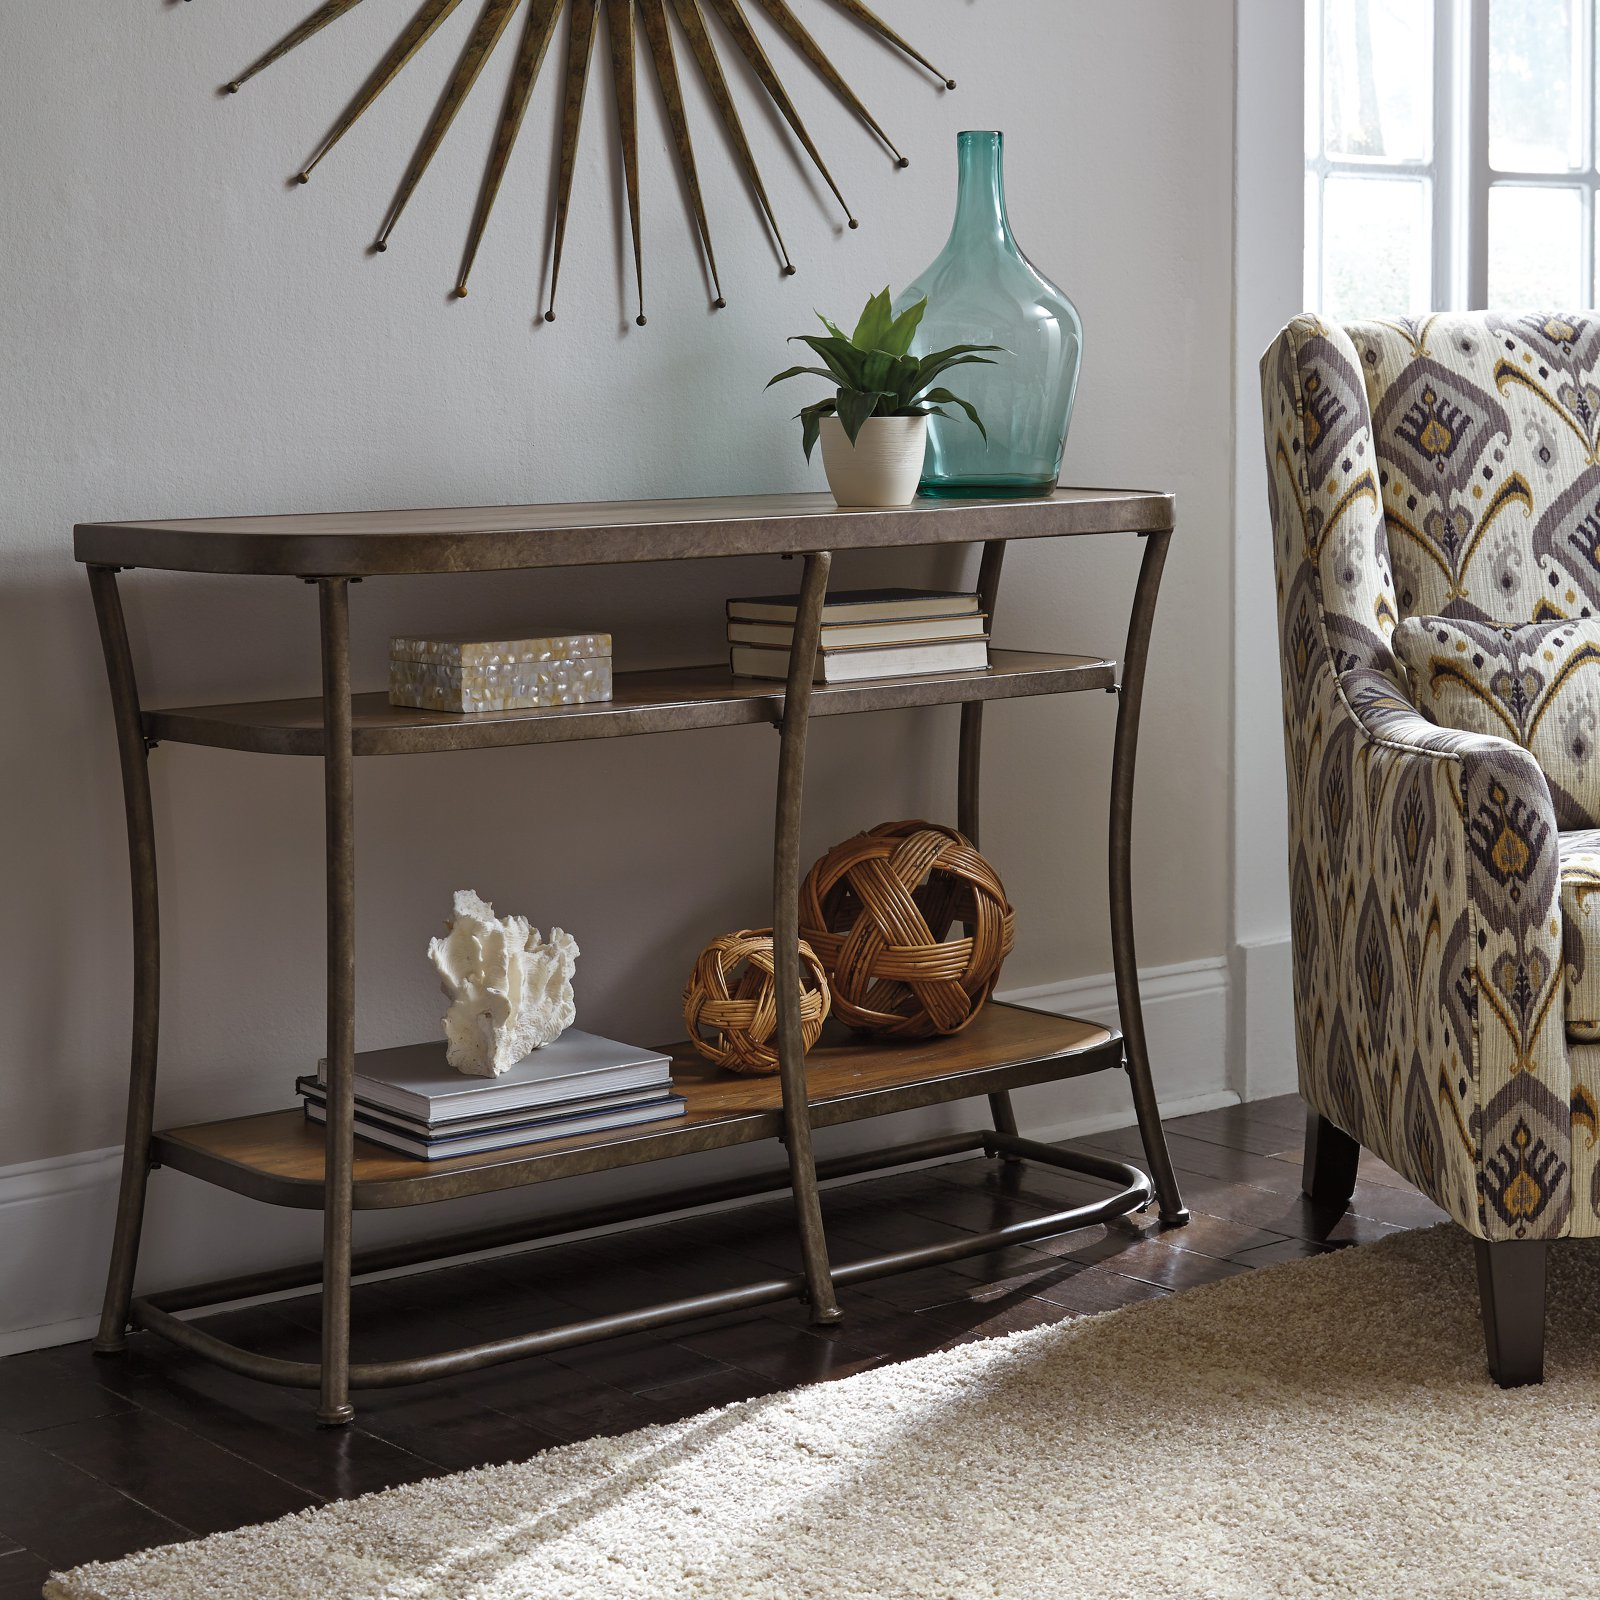 Signature Design by Ashley Nartina Sofa Table by Ashley Furniture